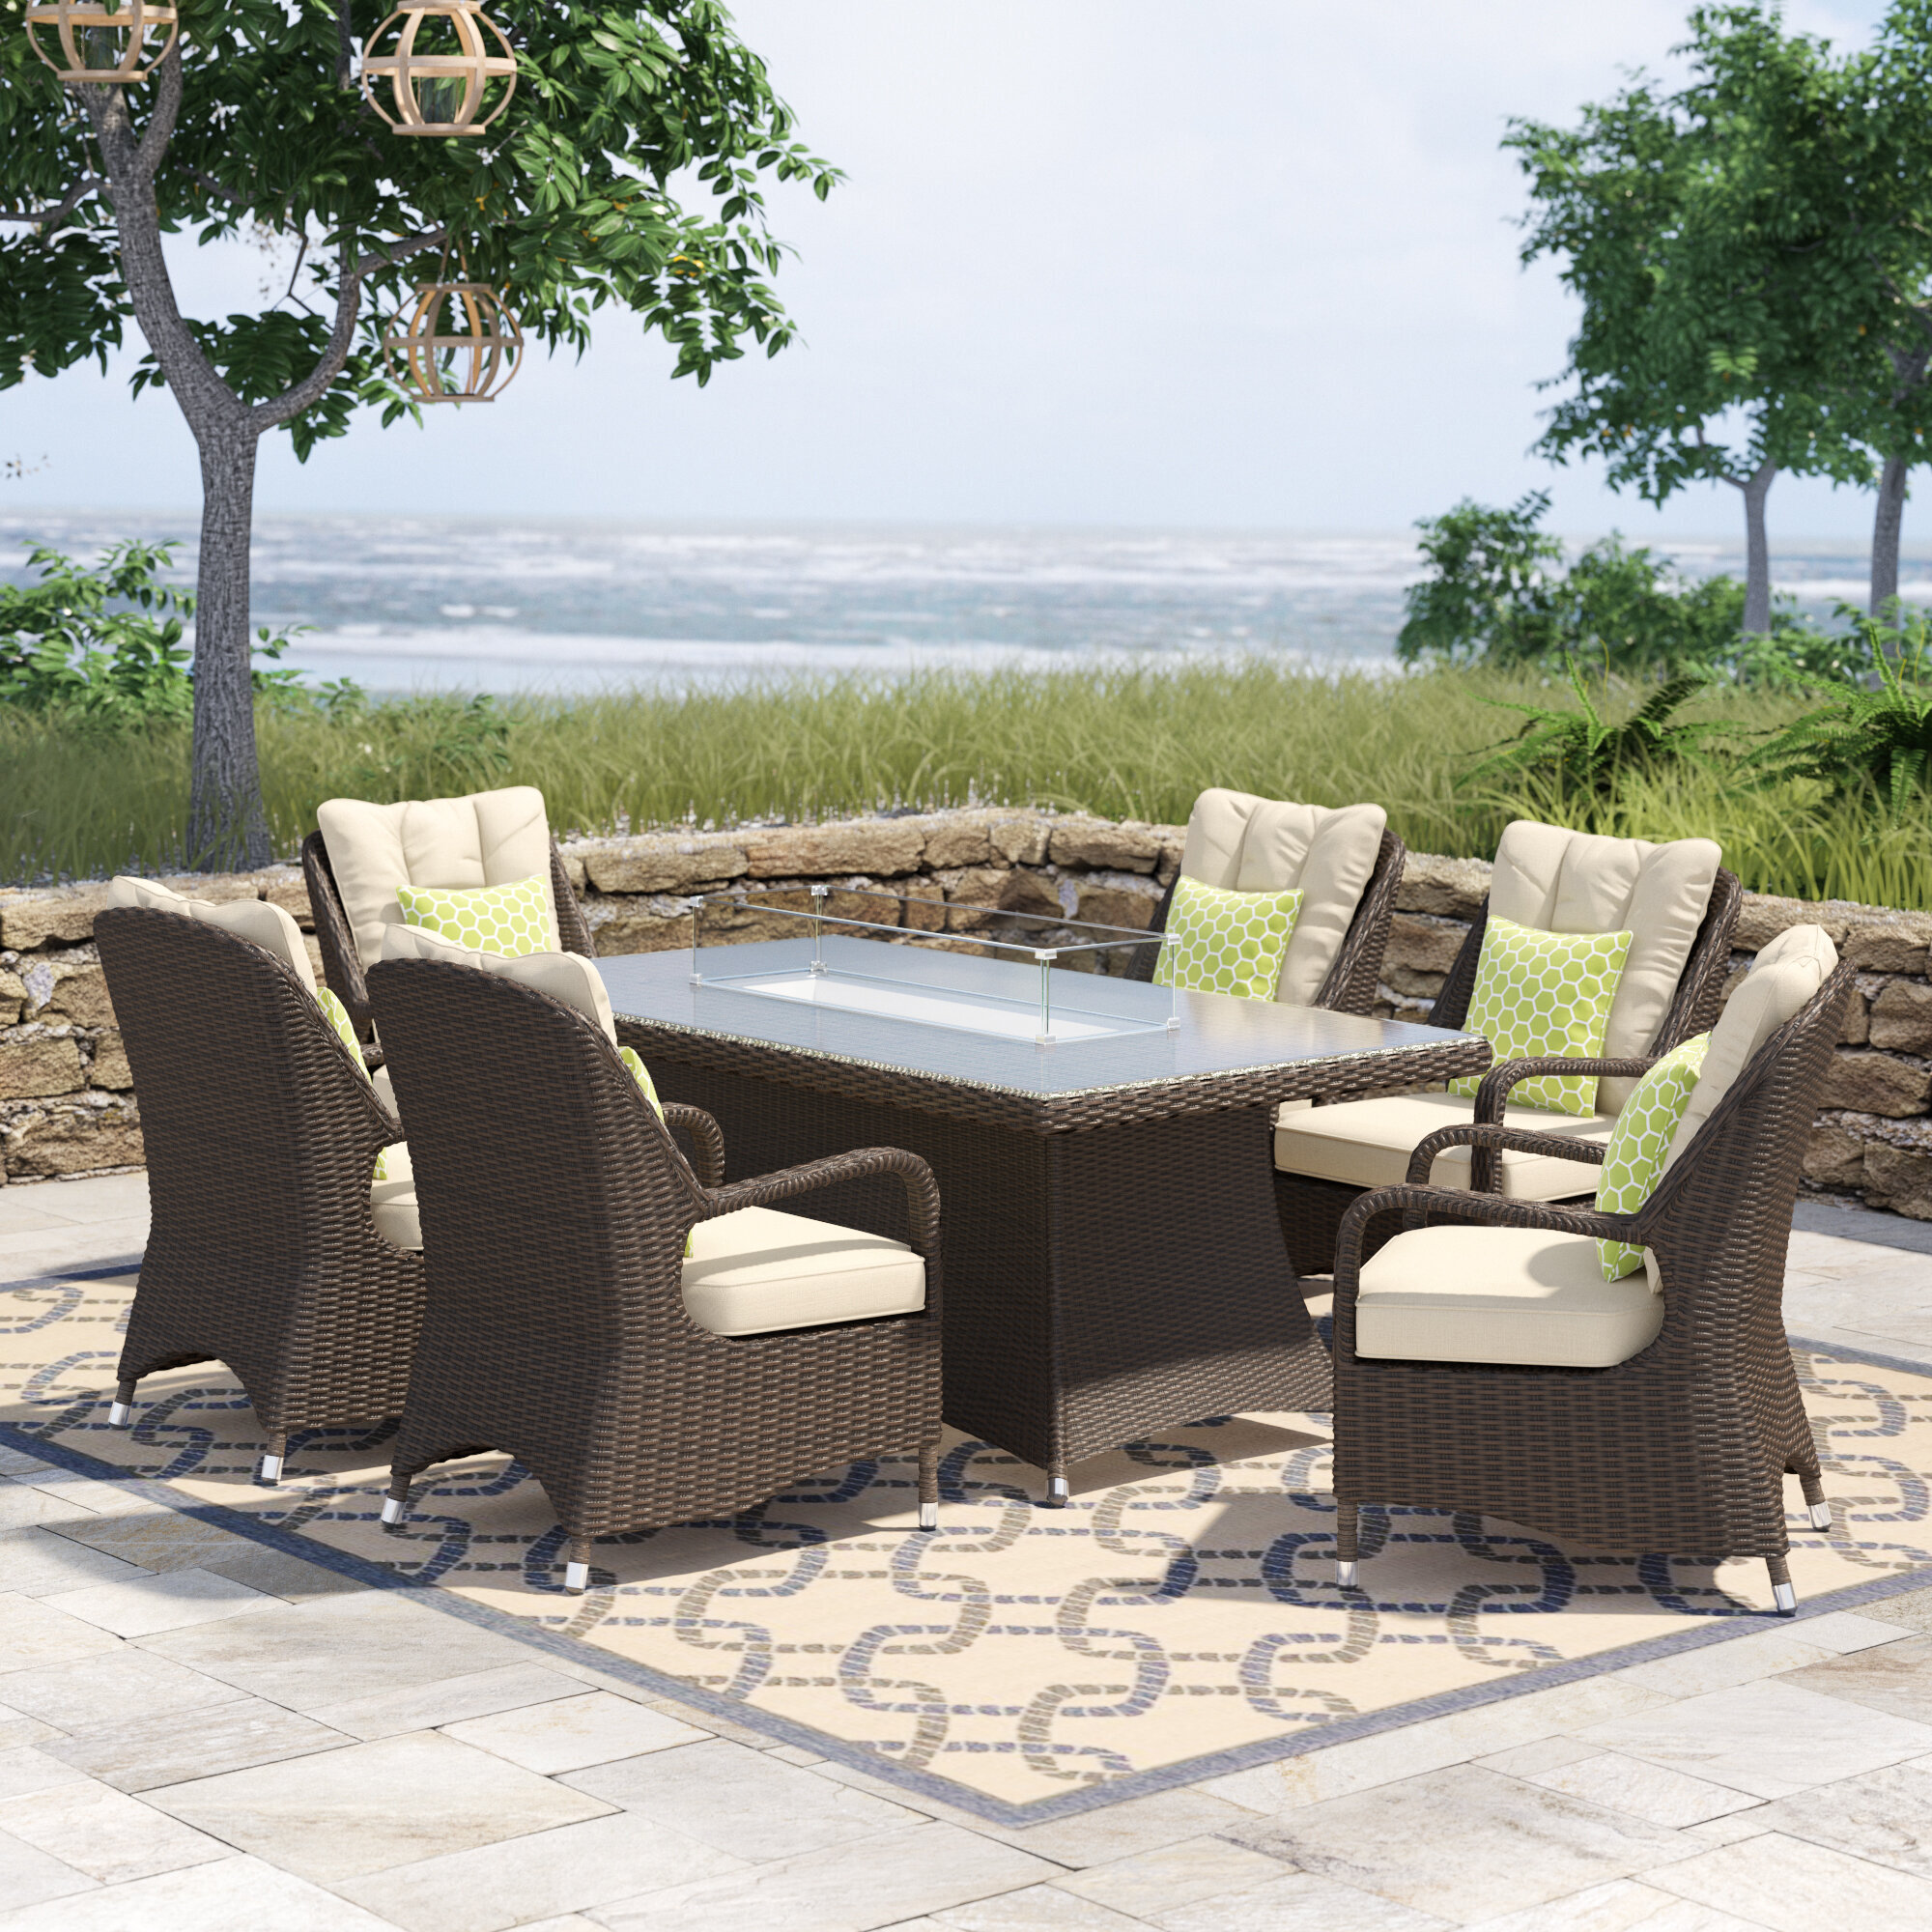 Red Barrel Studio Anderer 7 Piece Dining Set With Cushions Reviews Wayfair Ca